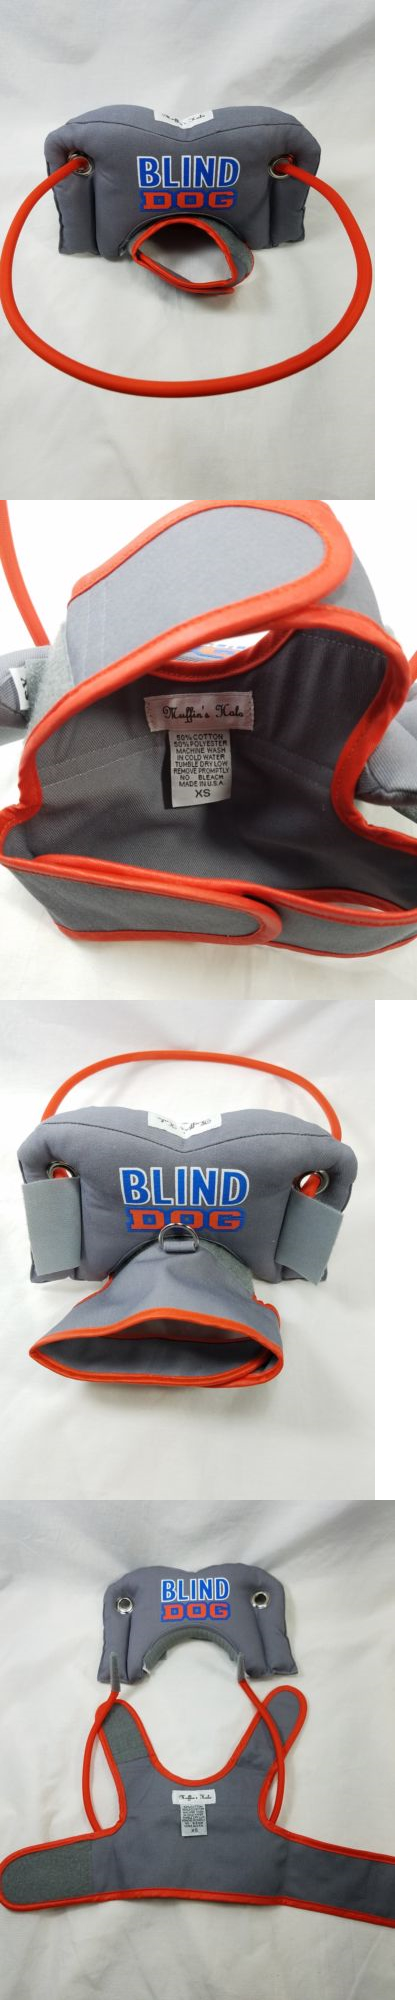 Other Dog Supplies 11286 Muffin S Halo For Blind Dog Grey